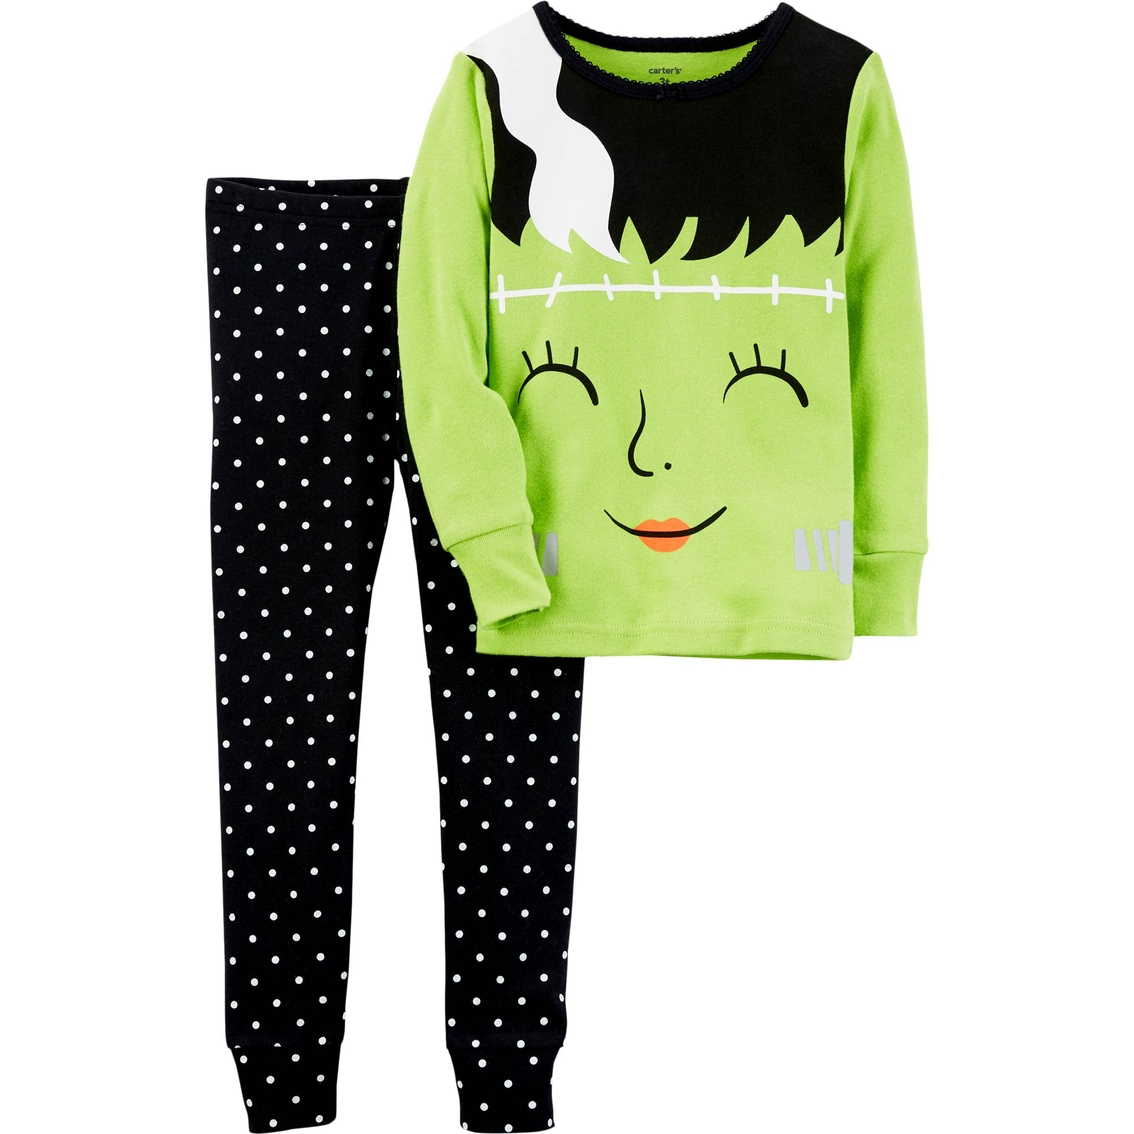 carters infant girls halloween glow in the dark pajama set